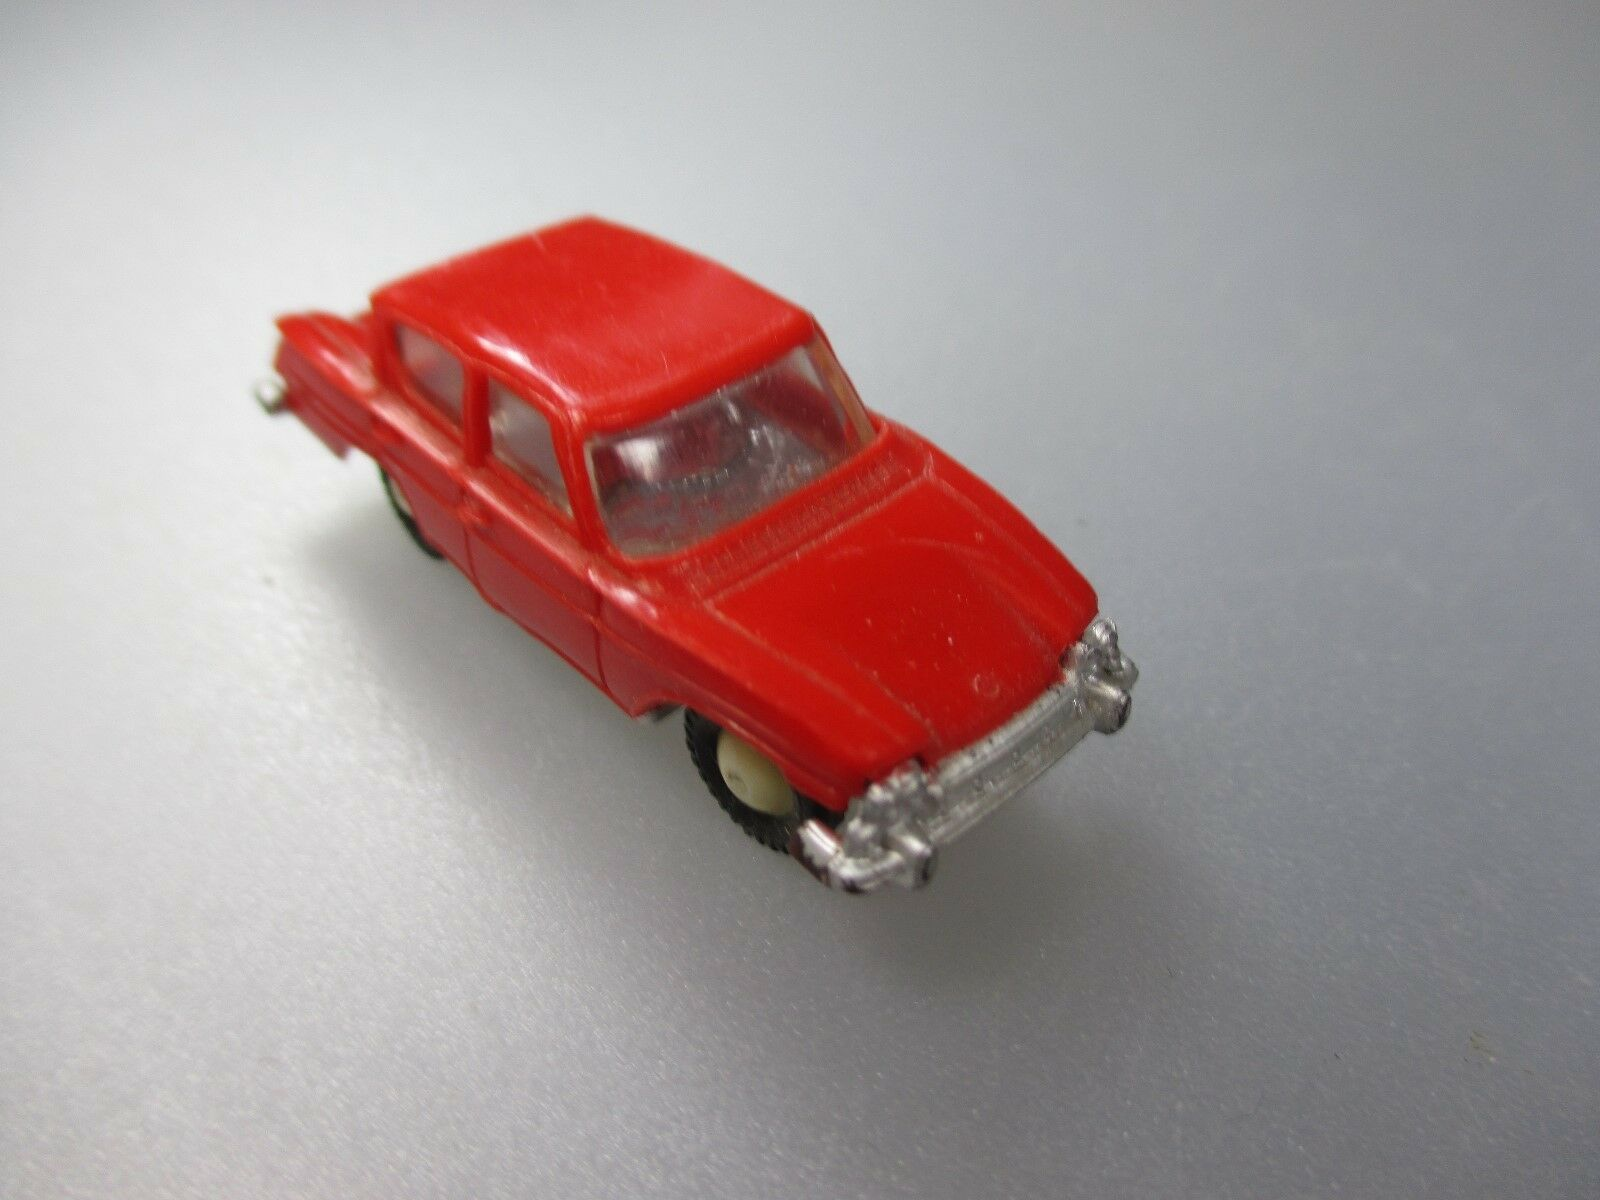 MINICARS anguplasford consul, made in Spain, 1 86 Scale, Rare (pkw43)